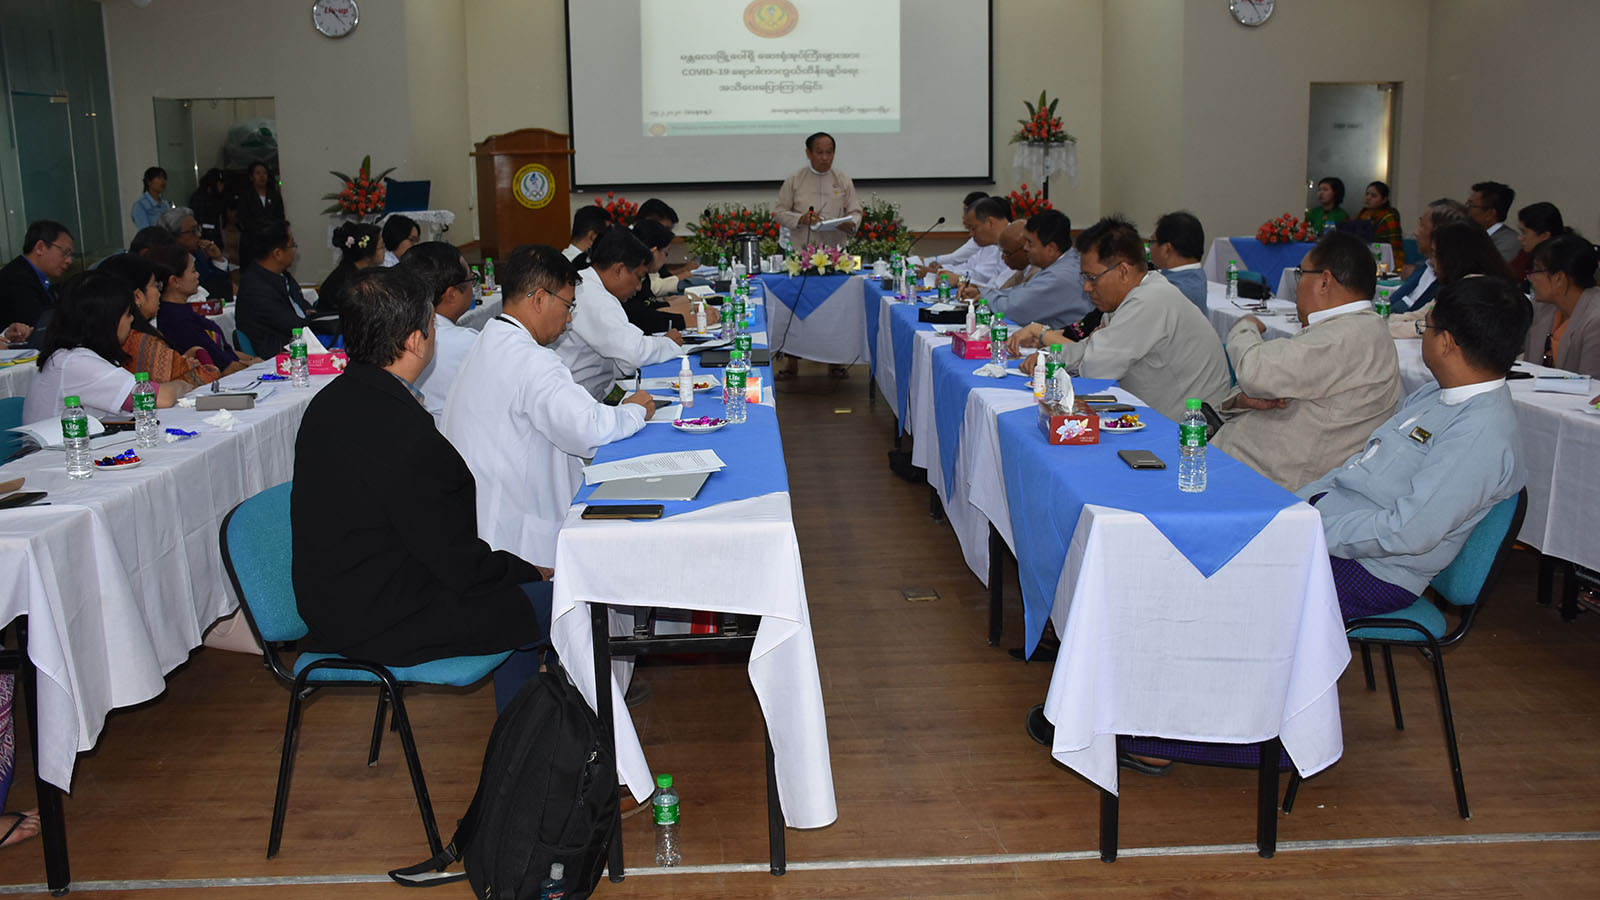 Union Minister Dr Myint Htwe addresses the coordination meeting to accelerate the preparatory work for control and prevention of Coronavirus Disease (COVID-19) in Mandalay yesterday.Photo: MNA